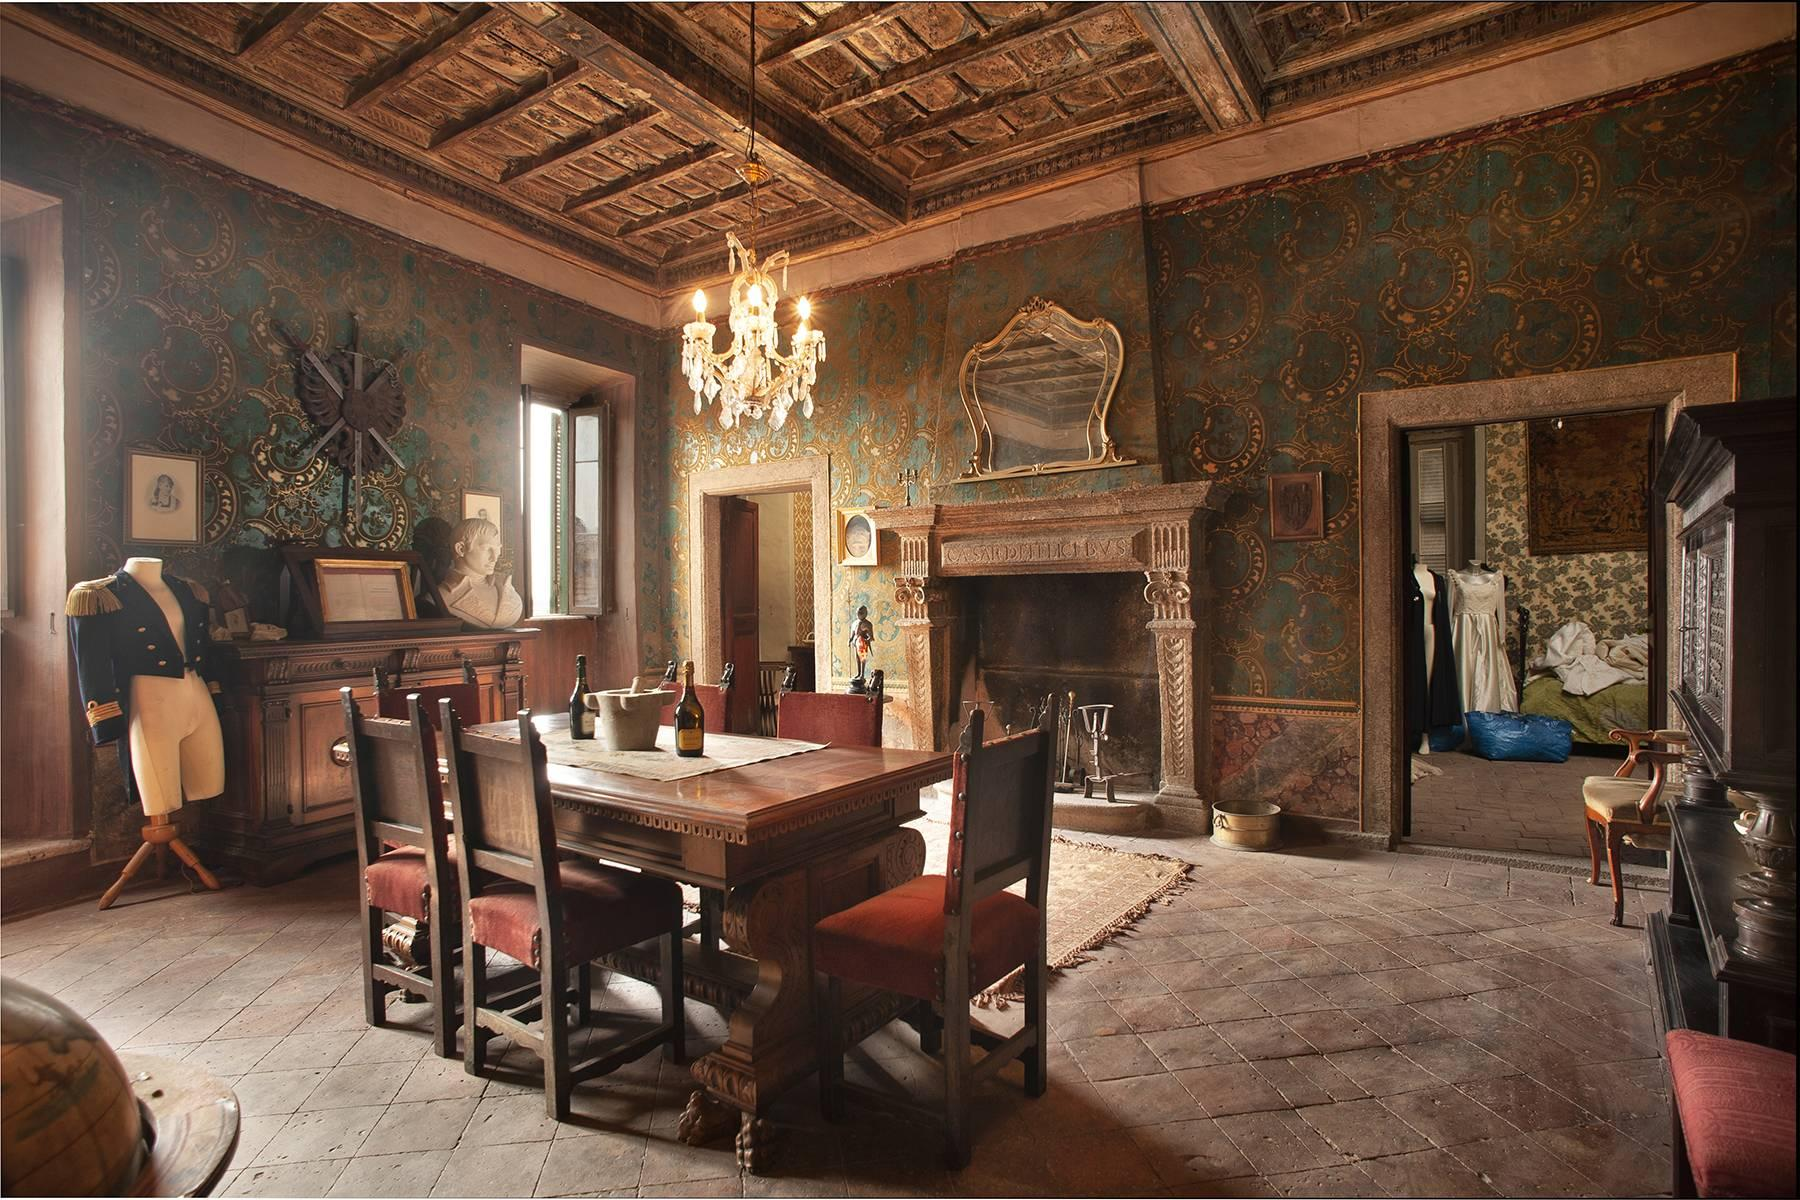 Historic Mansion in the countryside near Rome - 4